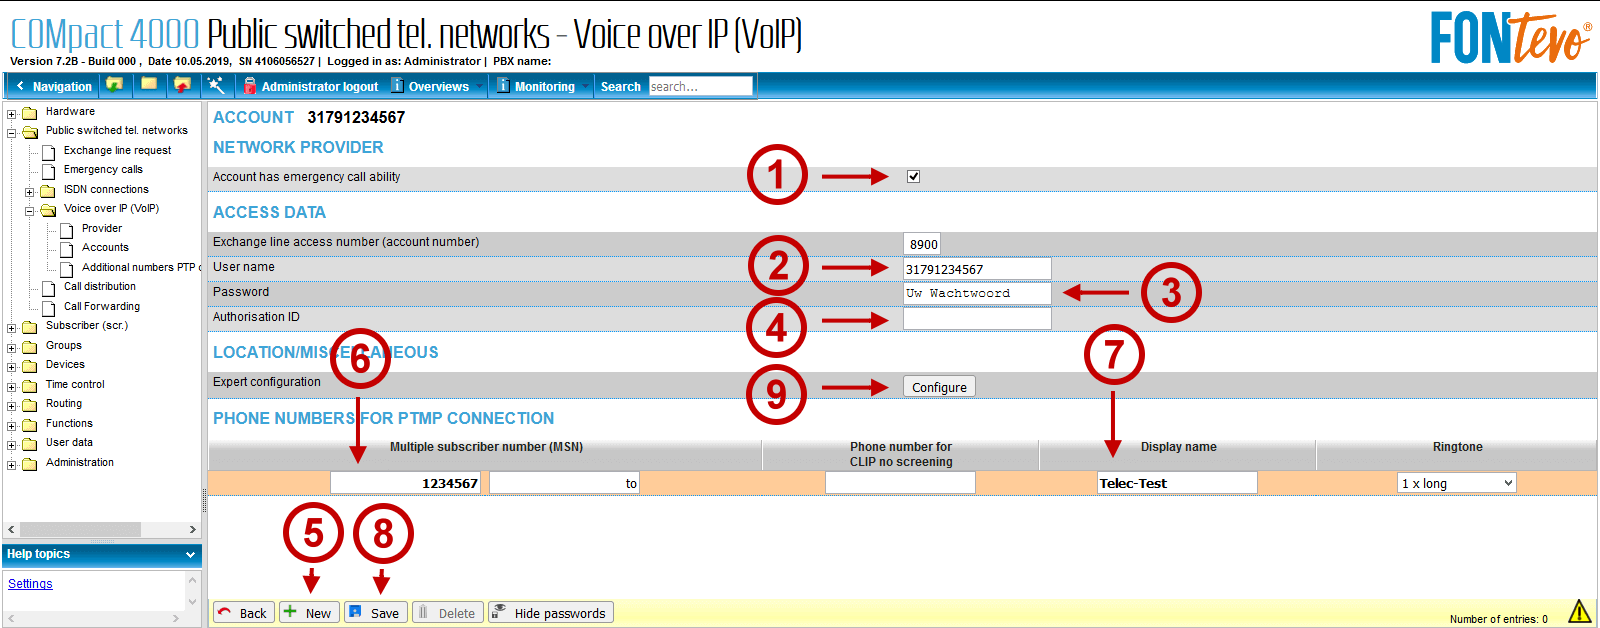 FONtevo en EnterpriseVoIP VoIP account aanmaken 2 van 2